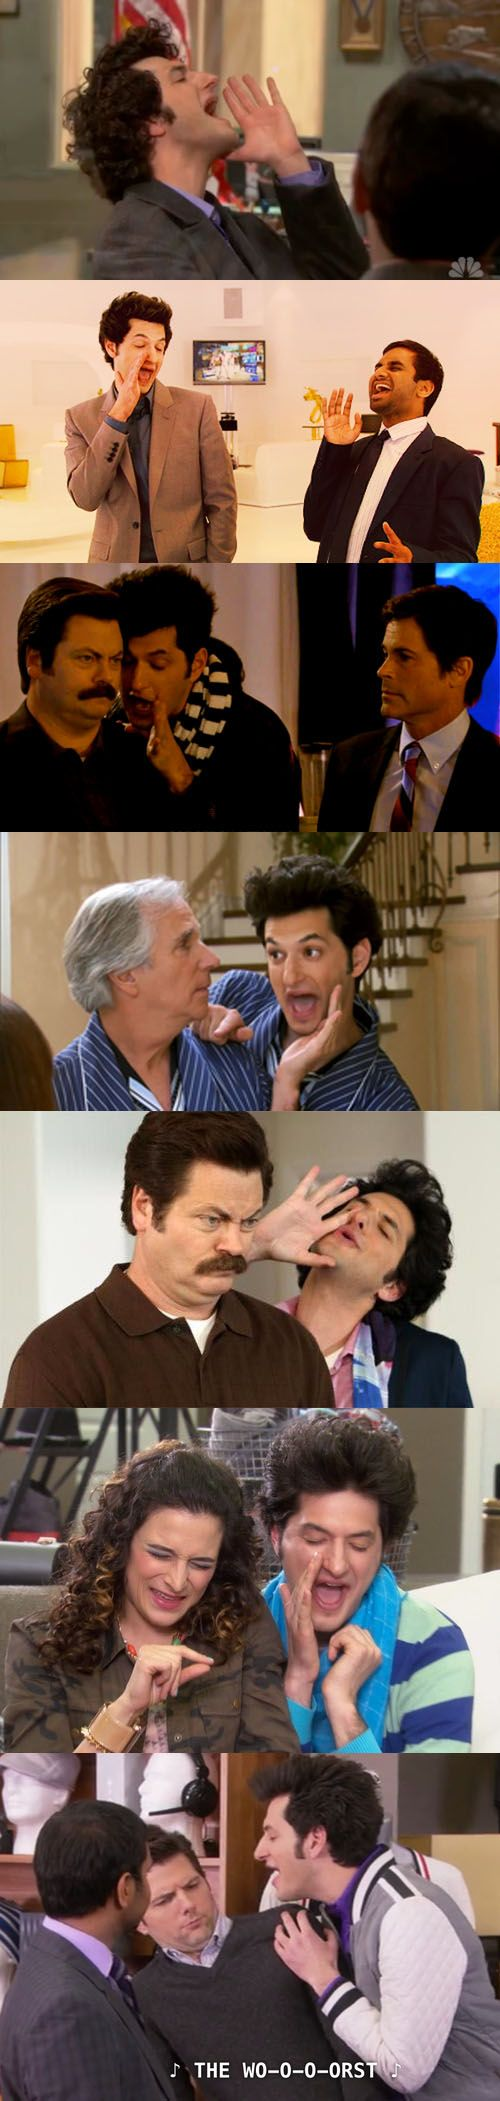 I love you, Jean Ralphio. Even though you're the *wooorrsssst*